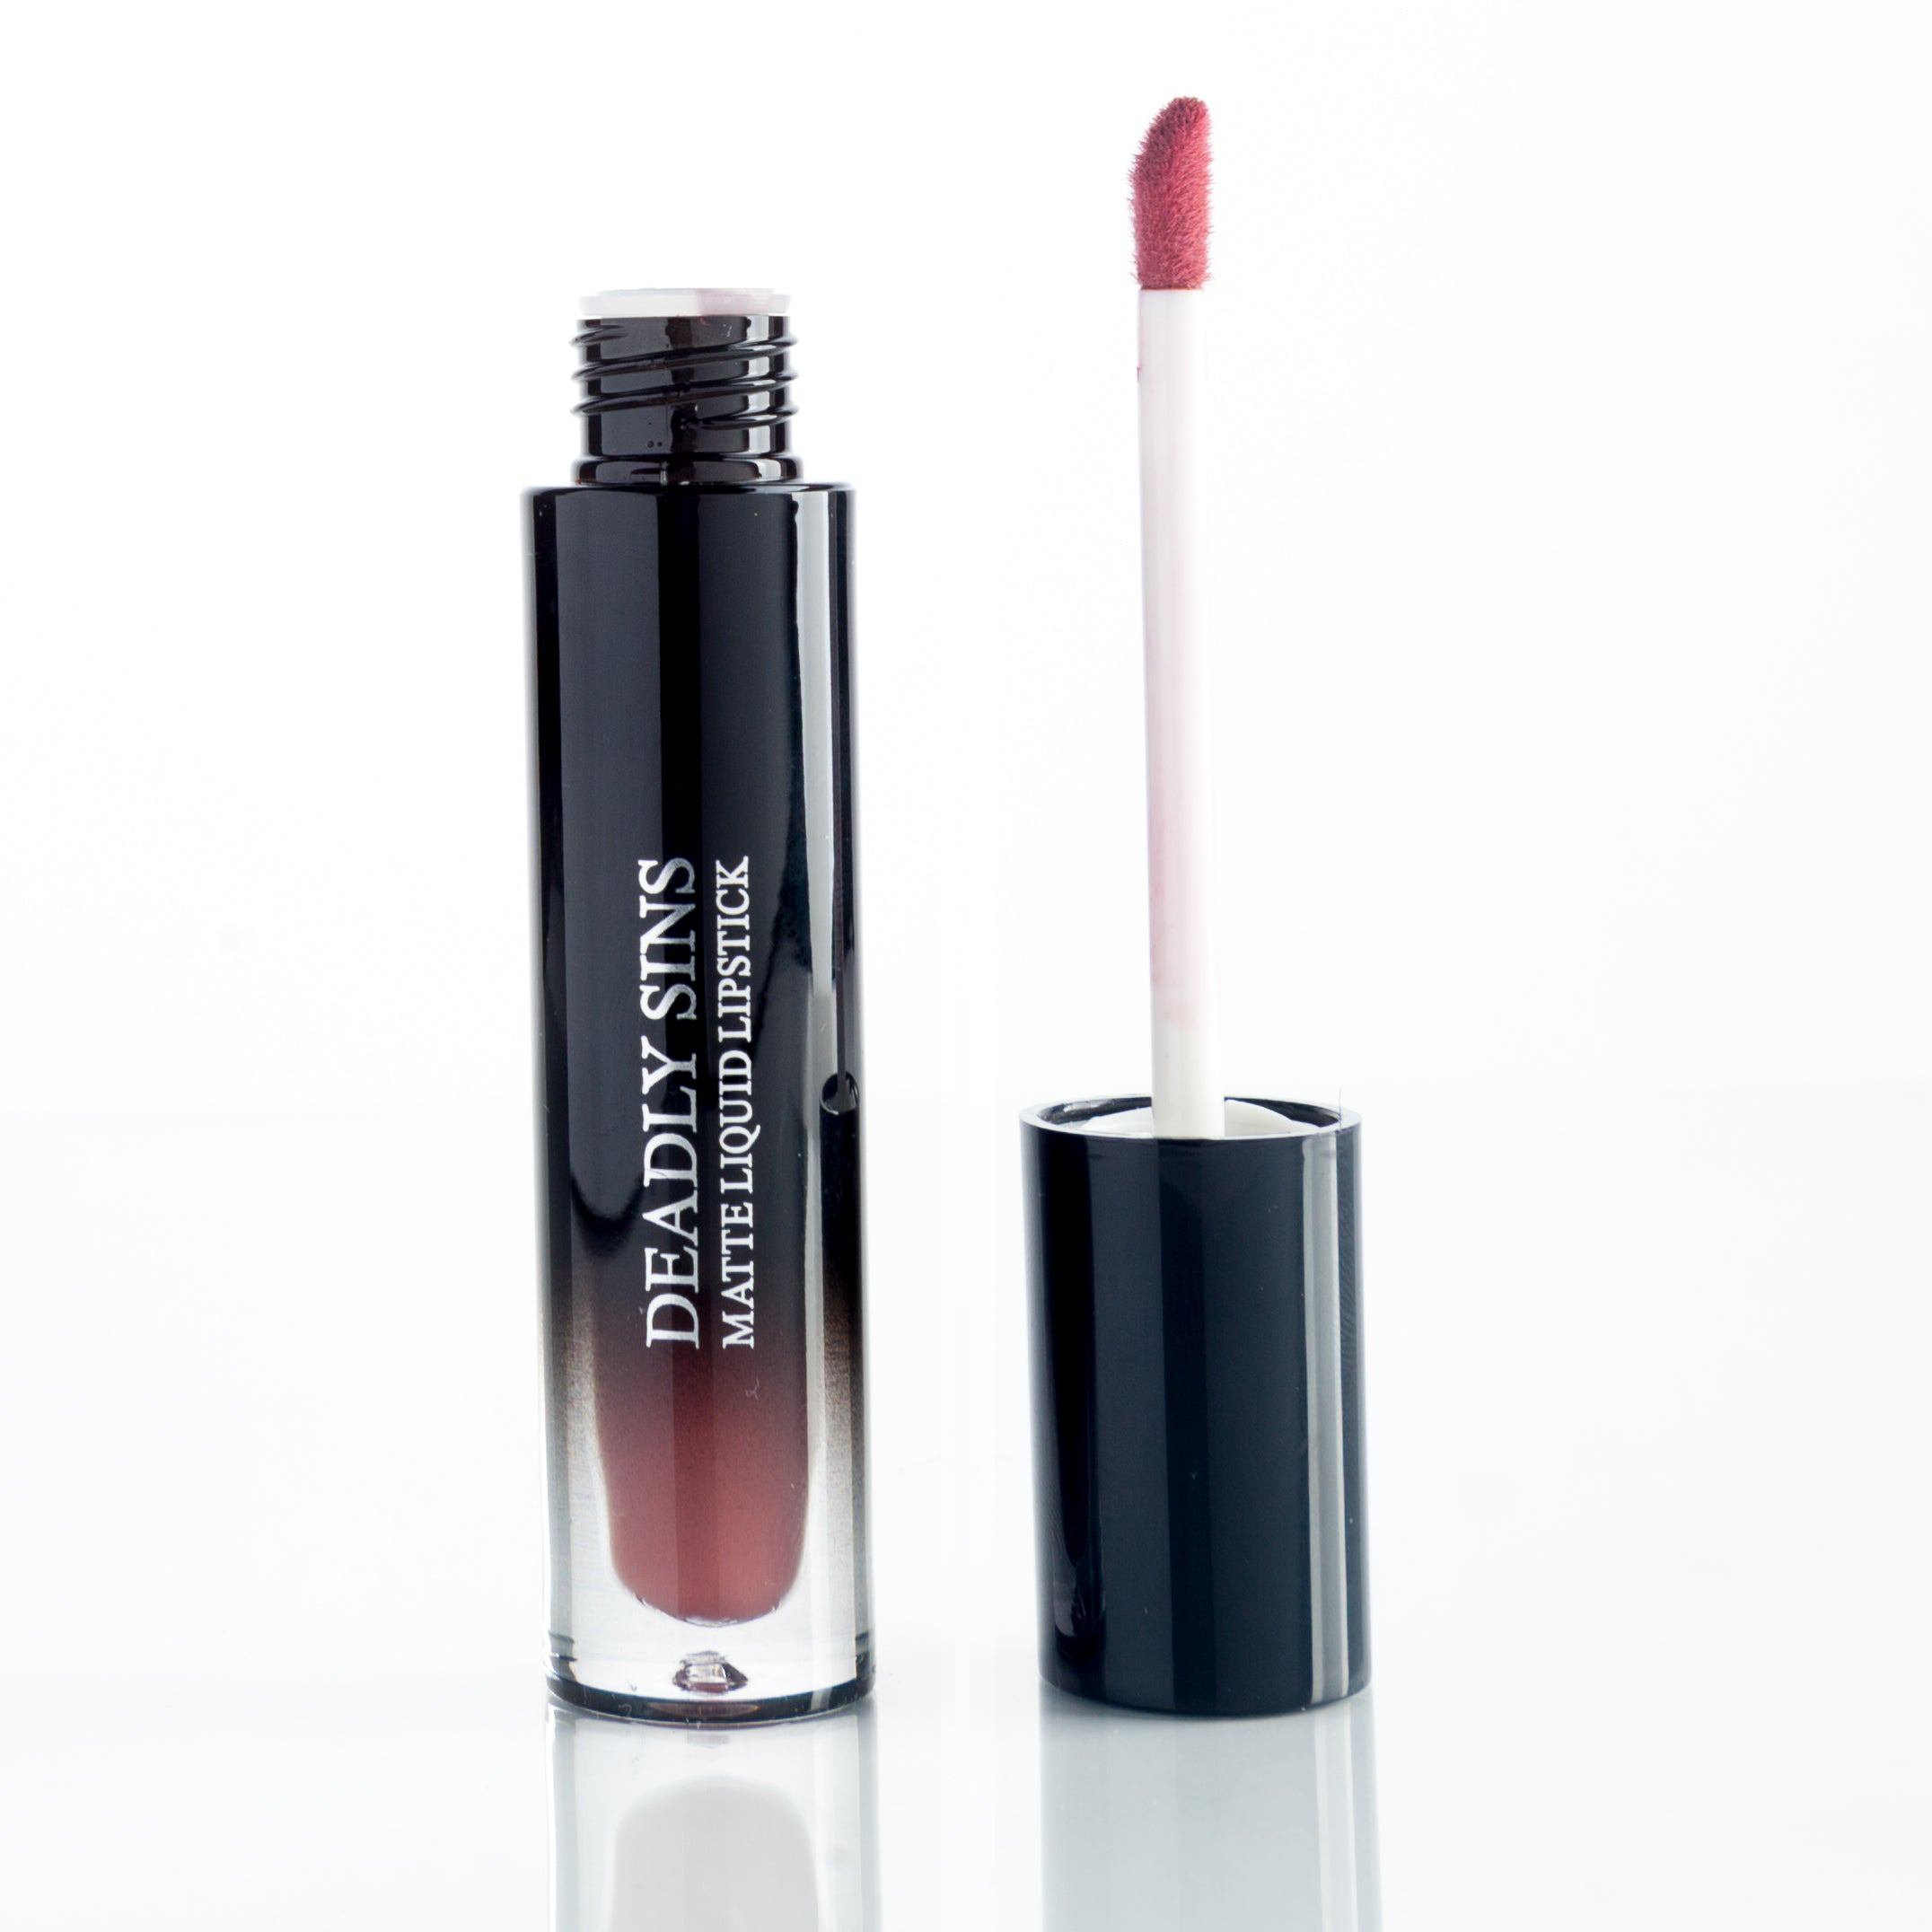 EQUINOX - MATTE LIQUID LIPSTICK - Makeup & vegan/cruelty free Cosmetics Products online | Melbourne | Deadly Sins Cosmetics